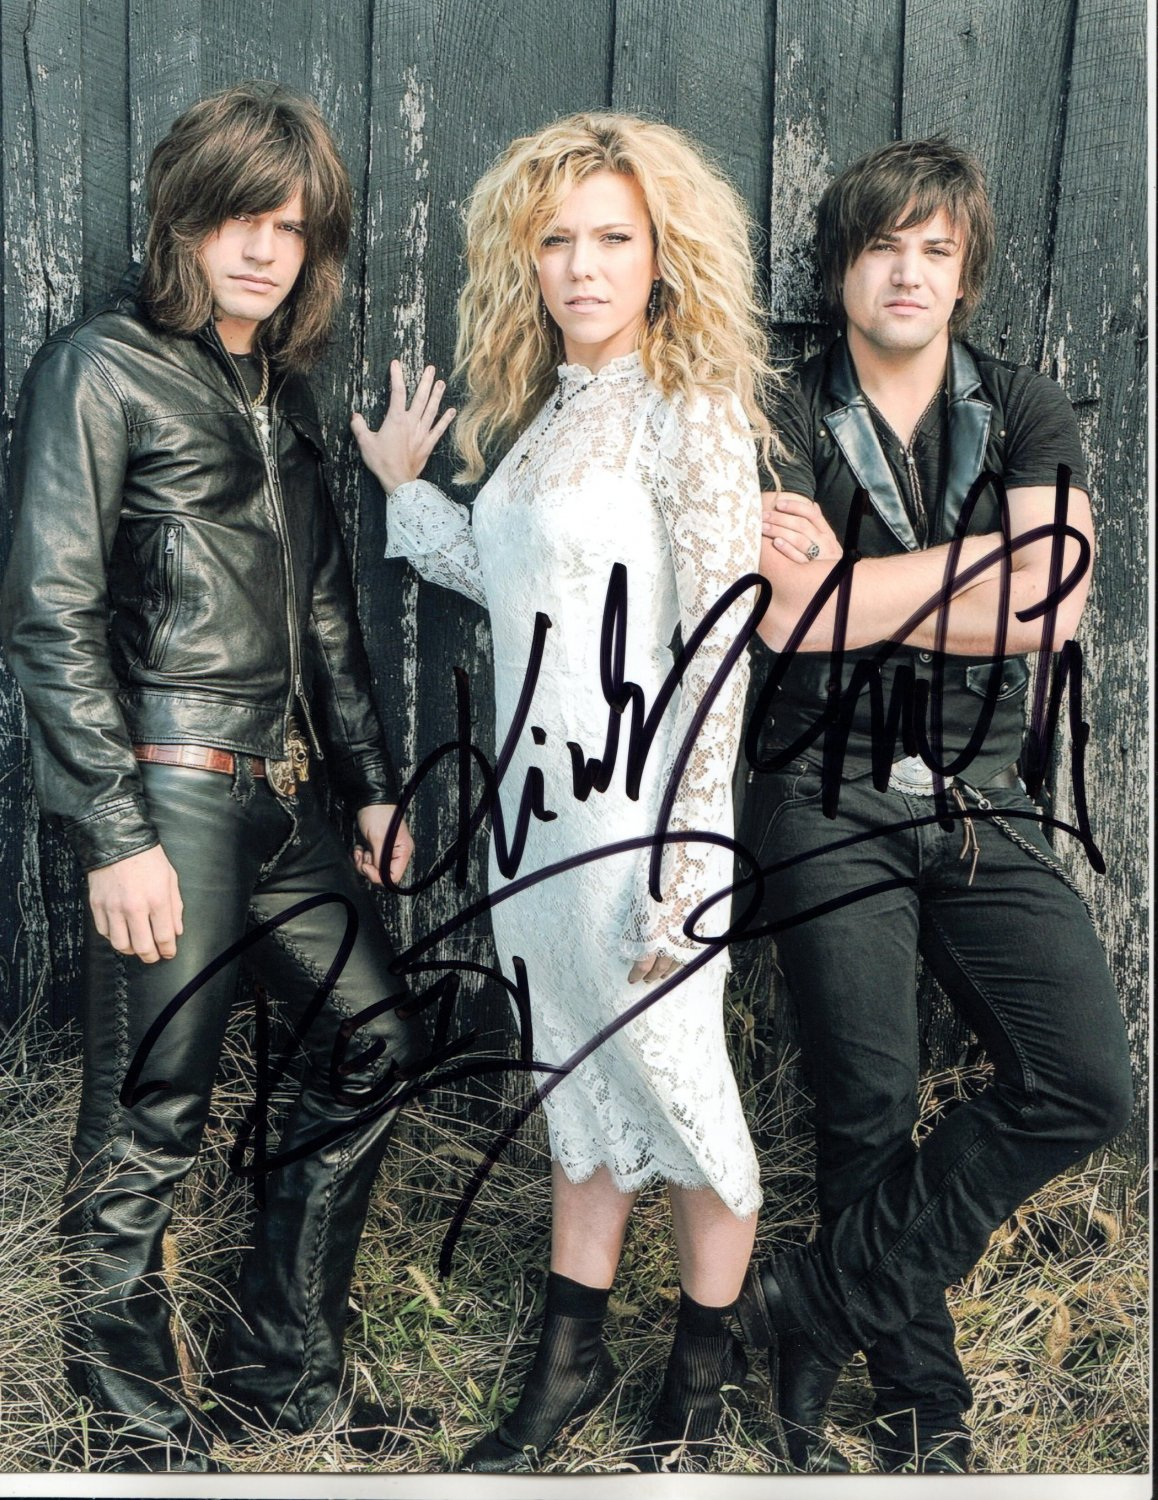 THE BAND PERRY - WONDERFUL ALL MEMBERS HAND SIGNED AUTOGRAPHED PHOTO WIH COA